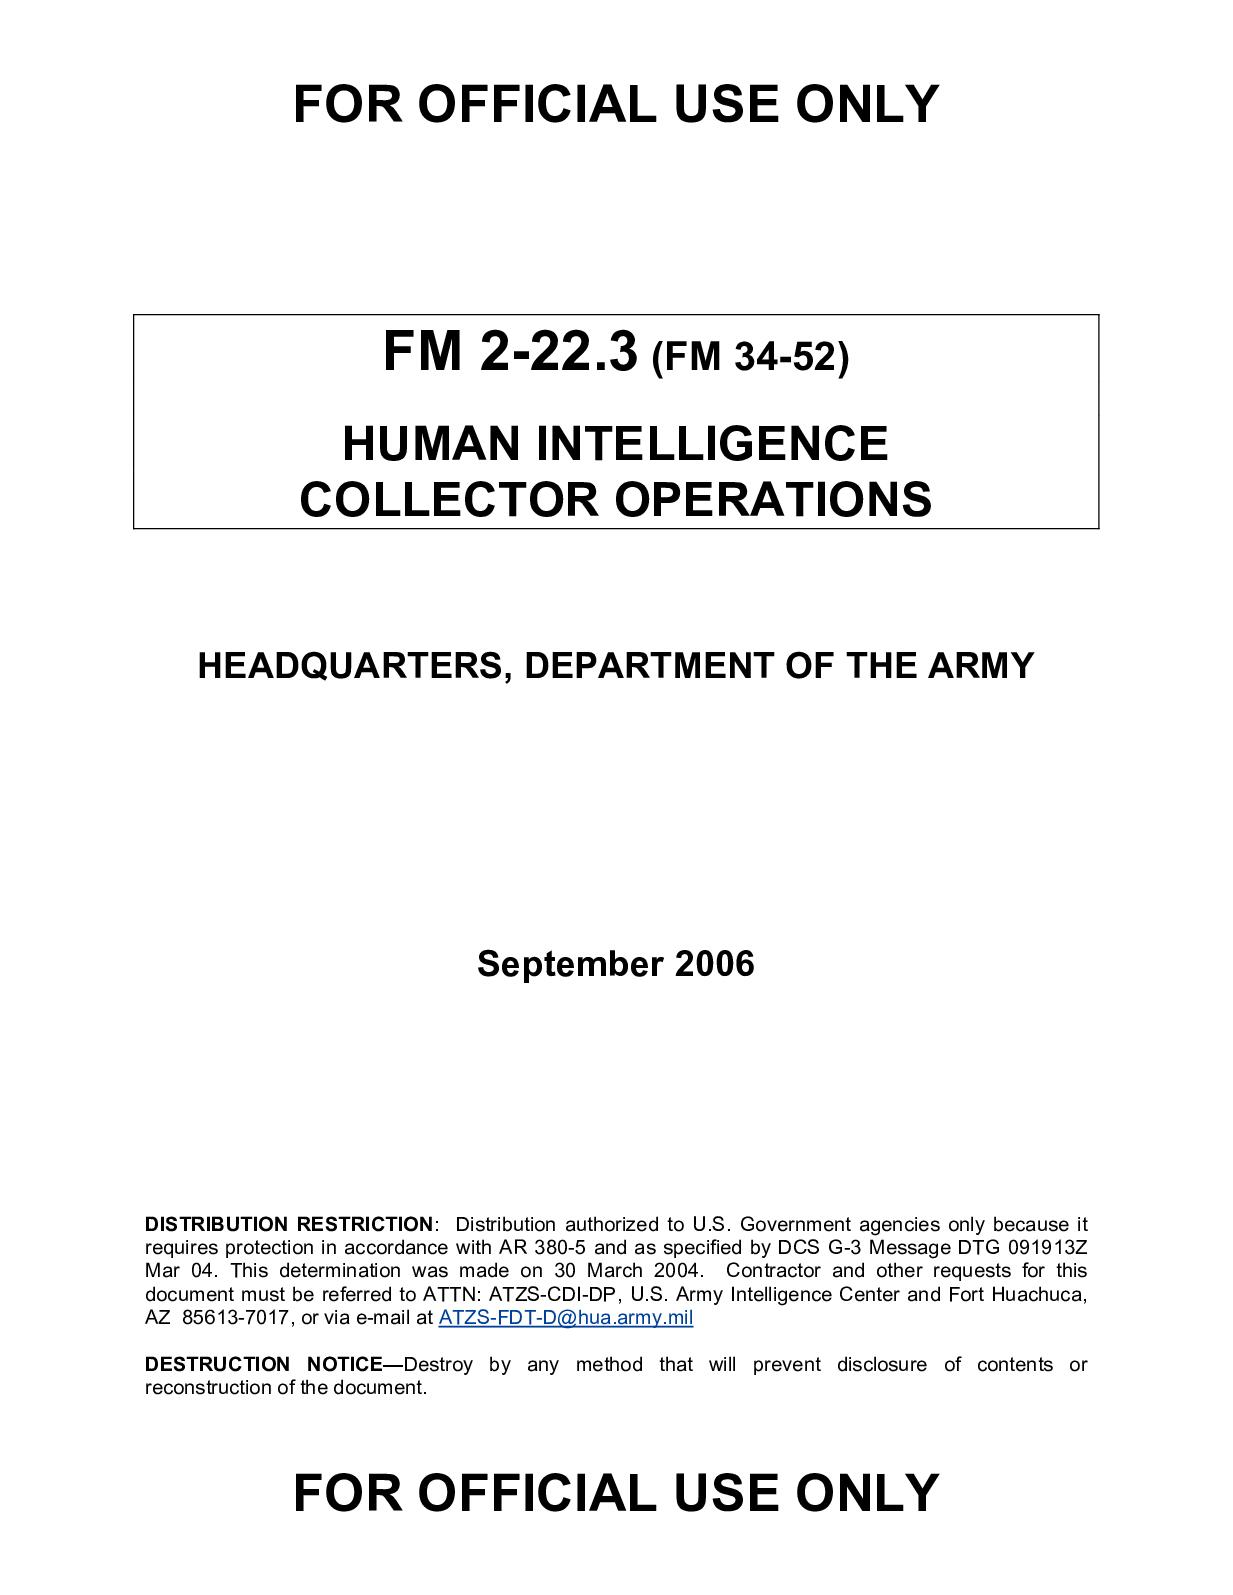 Calaméo - (e Book - English - Military) US Army - Field Manual FM 2 022 3 -  Human Intelligence Collector Operations (Sept. 2006).